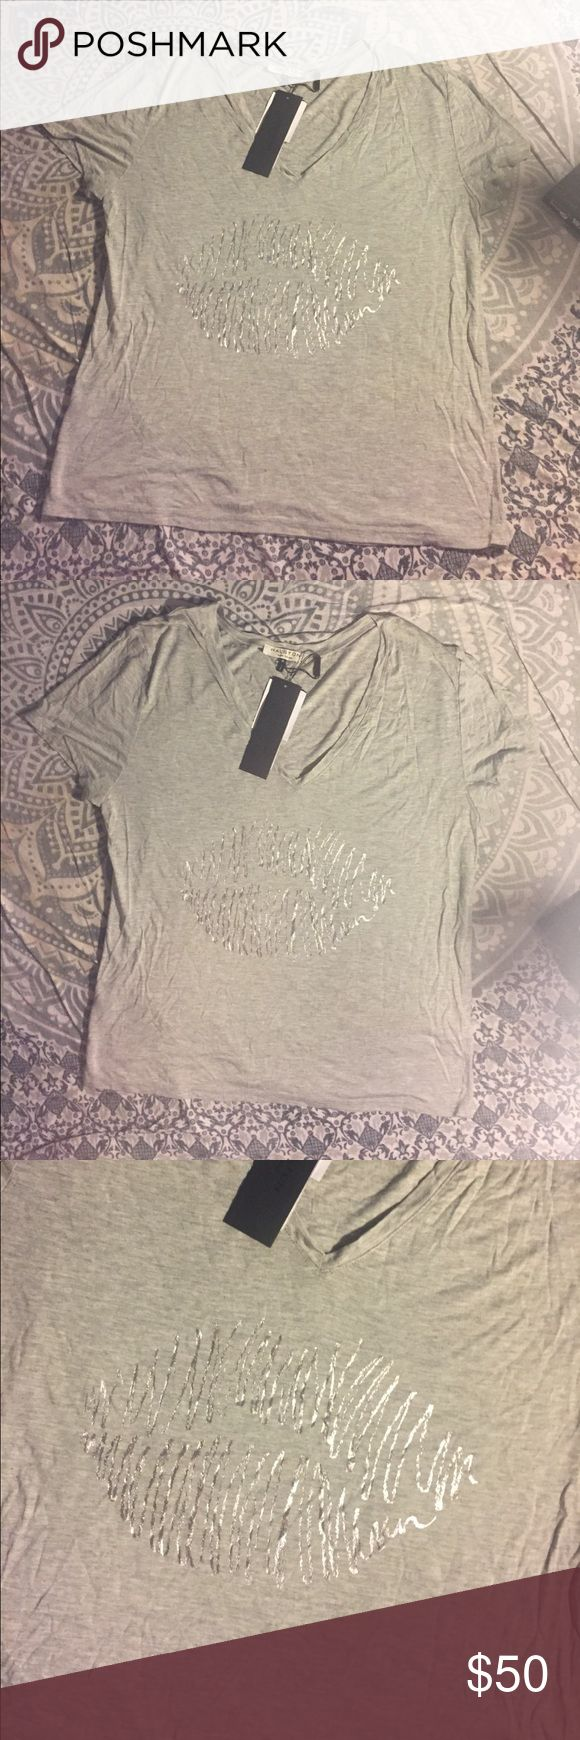 Halston heritage gray v neck silver kiss lips tee New with tags halston heritage women's size medium short sleeve v neck tee with silver kiss lips on the front. Very chic. Smoke and pet free home. No trades. Open to offers Halston Heritage Tops Tees - Short Sleeve